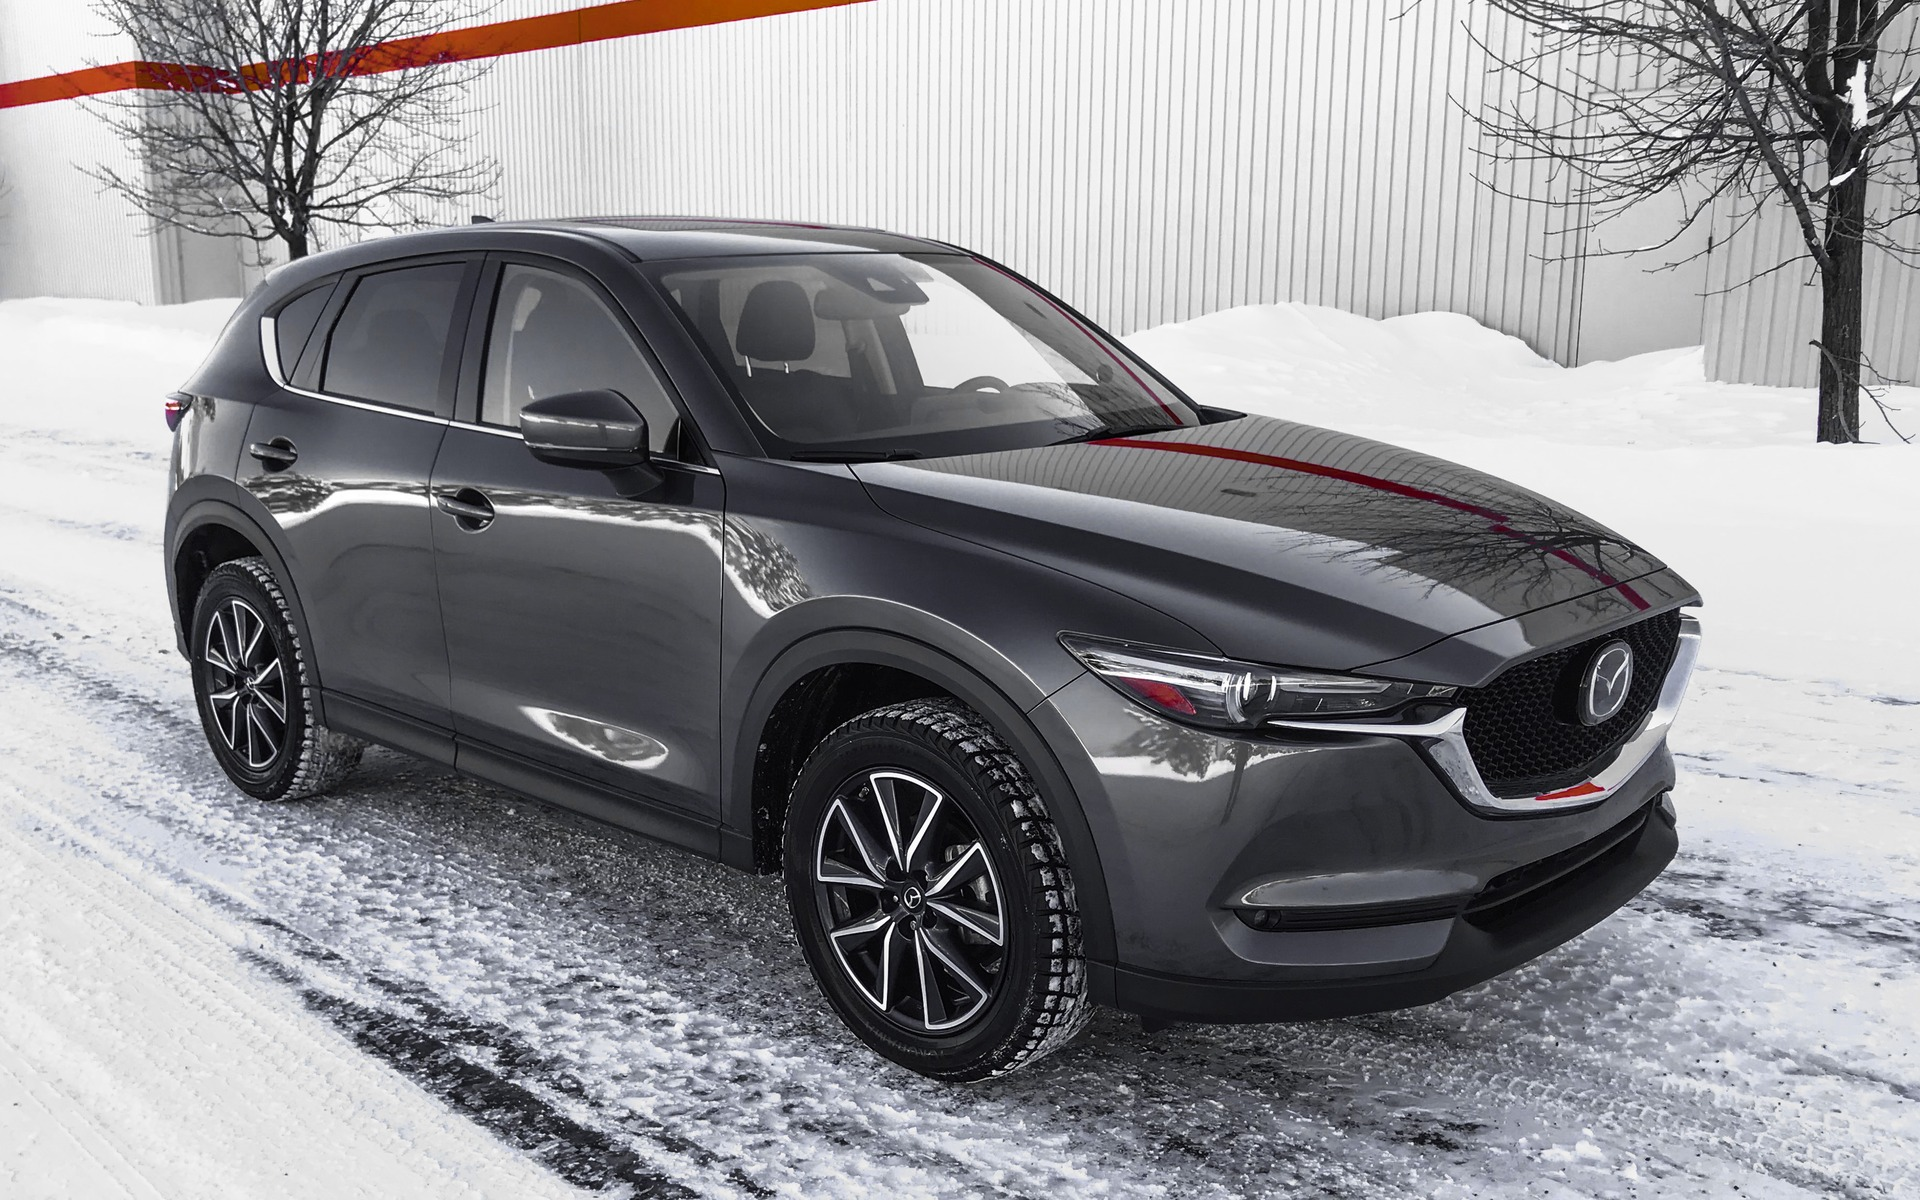 2017 Mazda CX 5: Ready To Take On The Big Boys